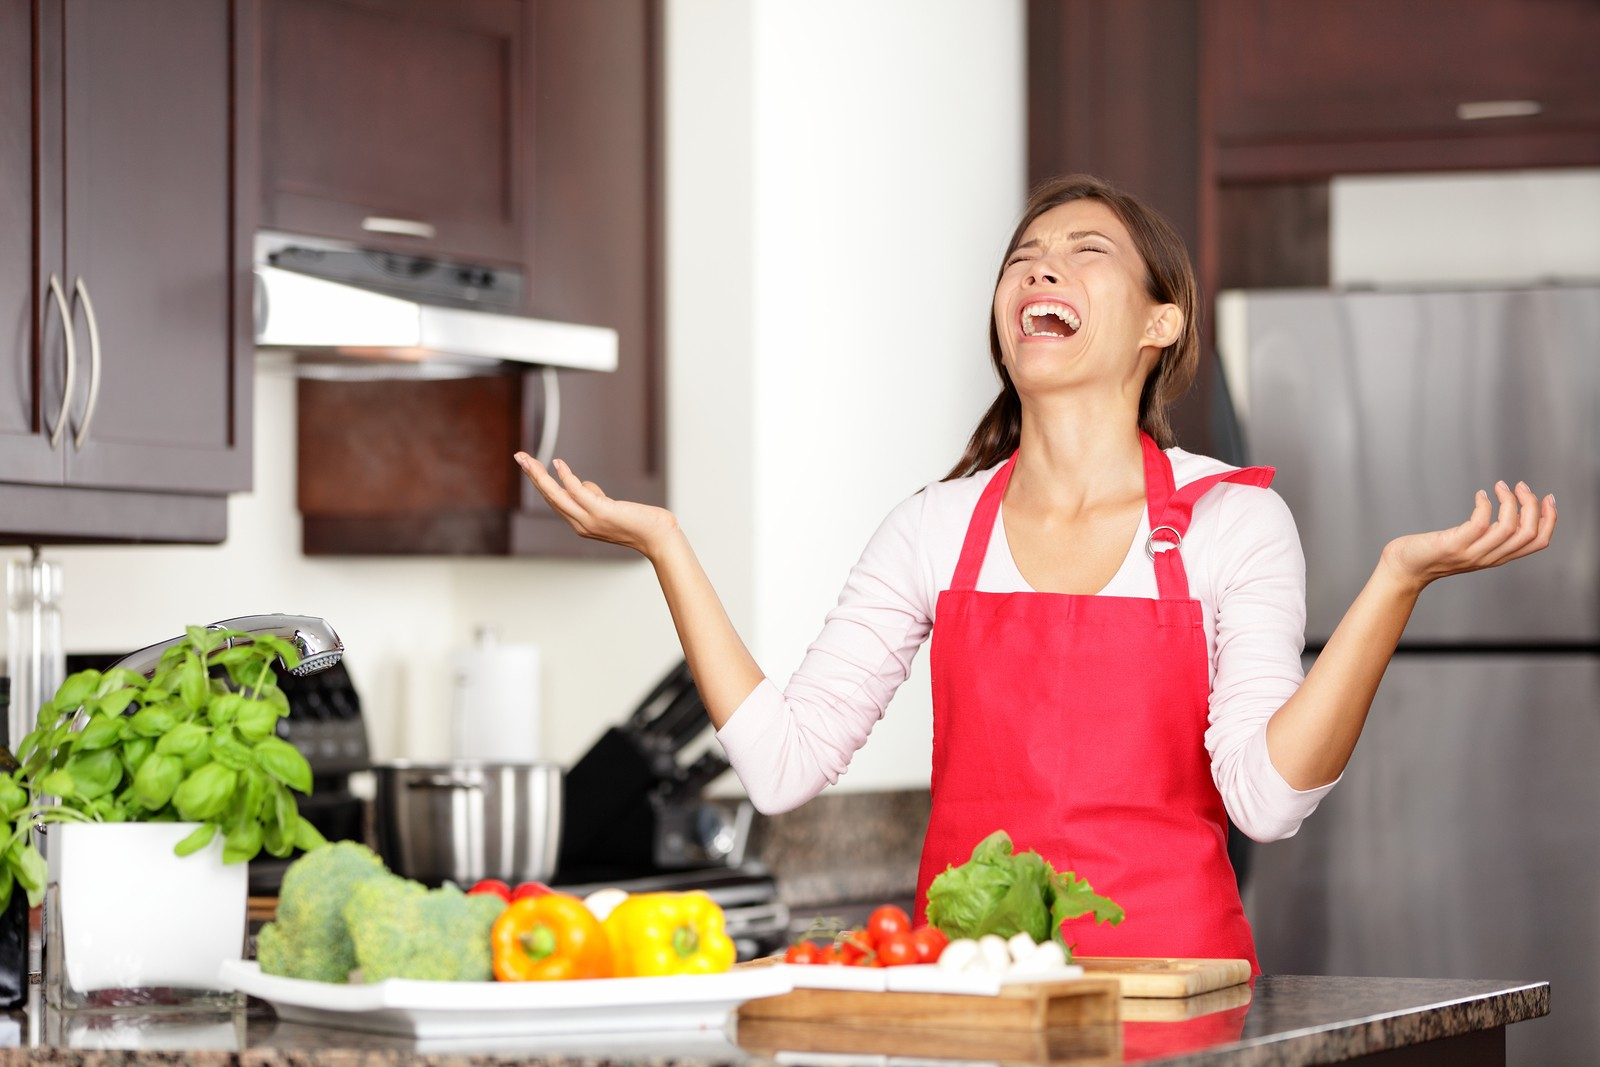 bigstock funny cooking image